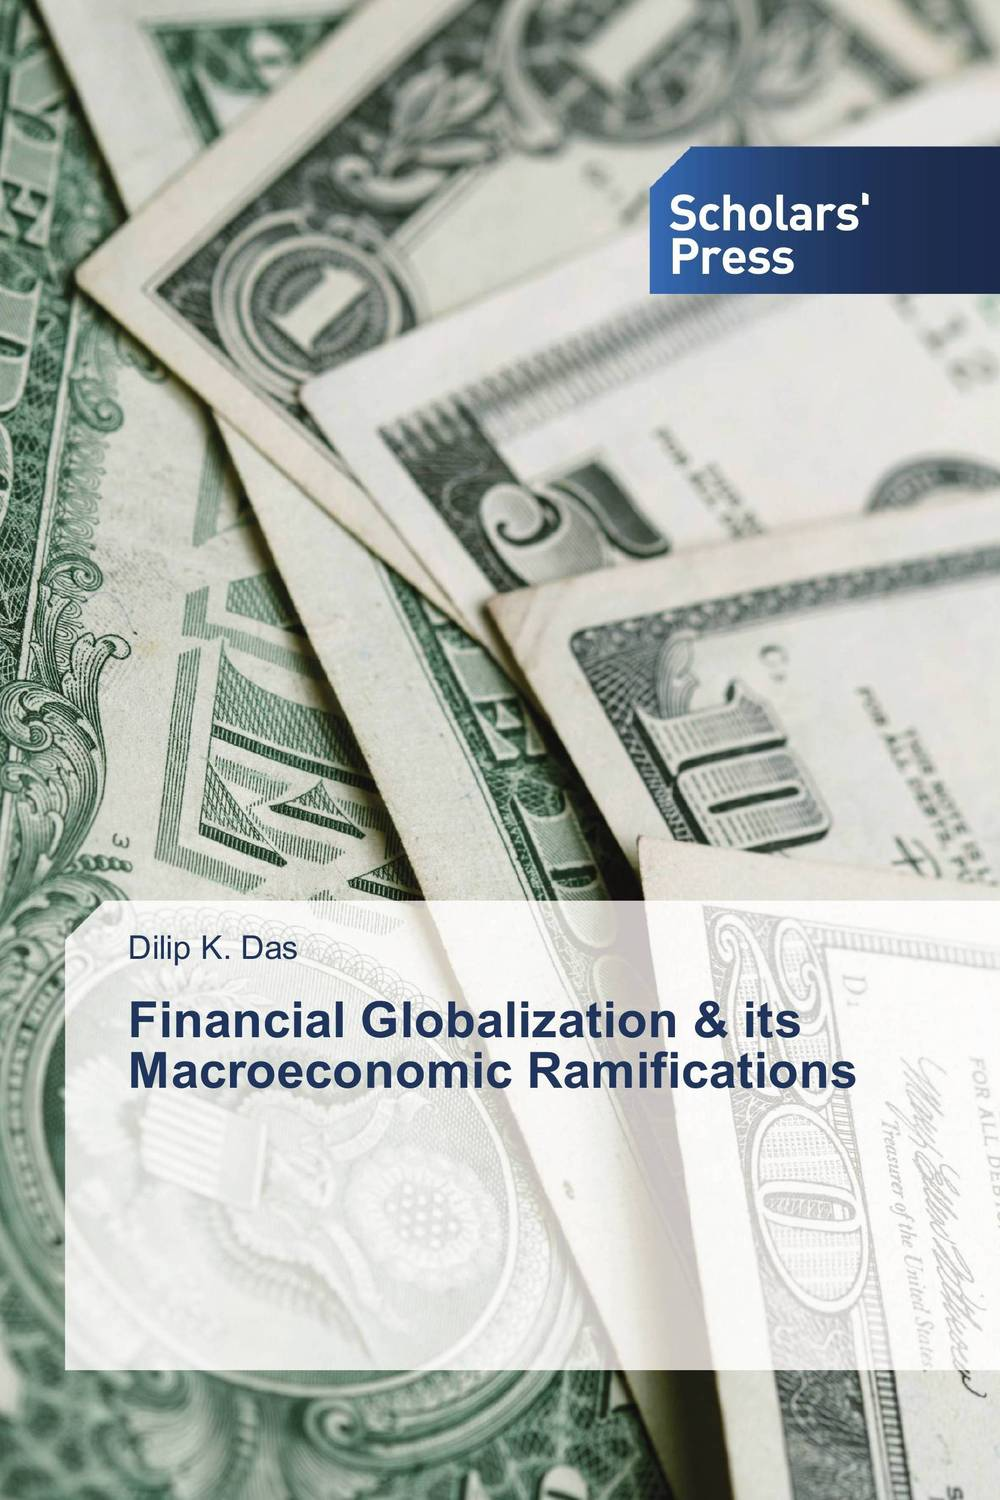 Financial Globalization & its Macroeconomic Ramifications